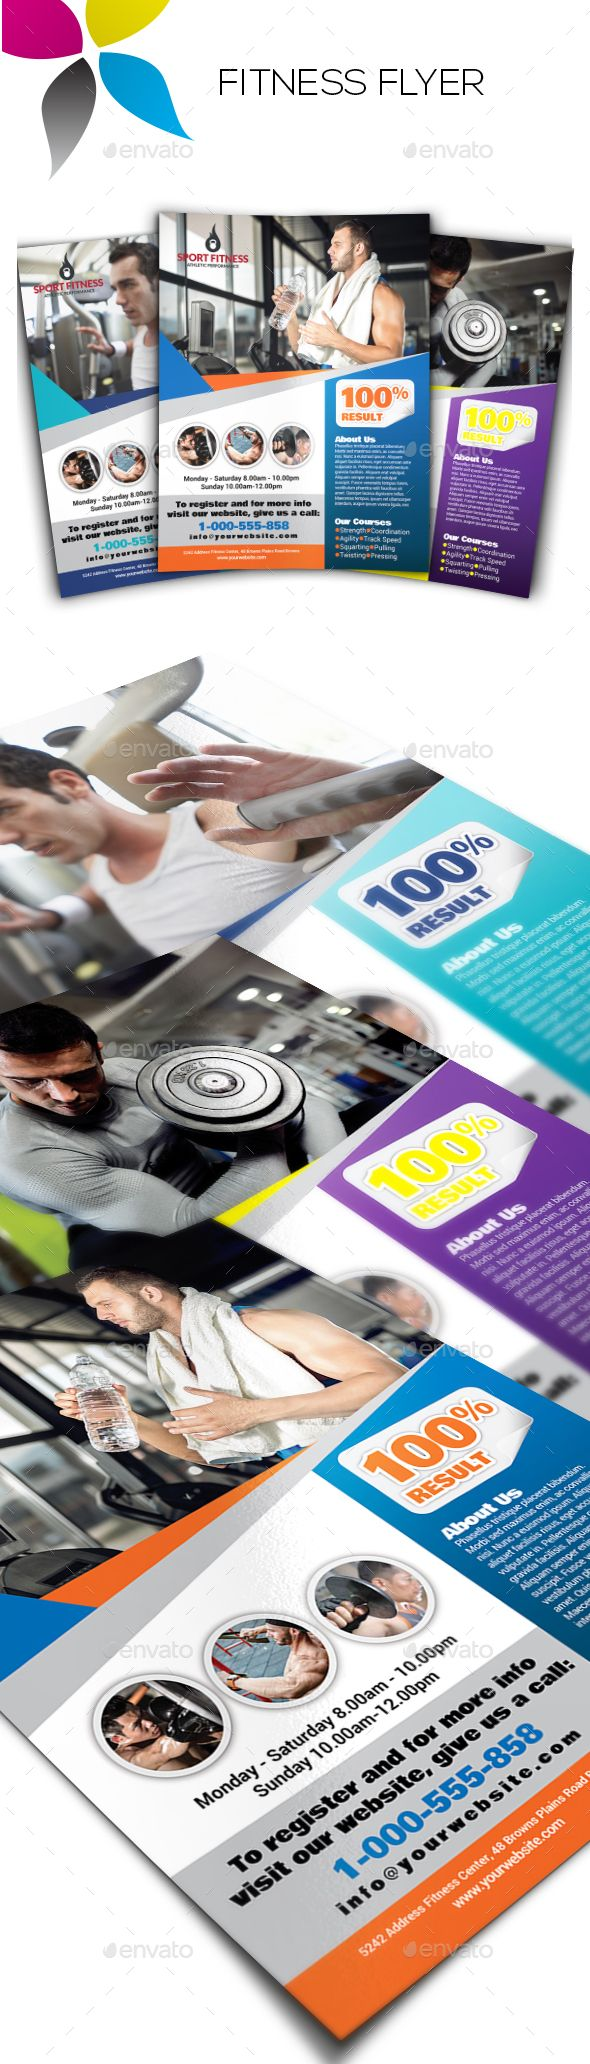 1544093058_974_Healthcare-Advertising-Fitness-Flyer-Sports-Events-Download-here-graphicriver.net Healthcare Advertising : #Fitness Flyer - Sports Events Download here:   graphicriver.net/...